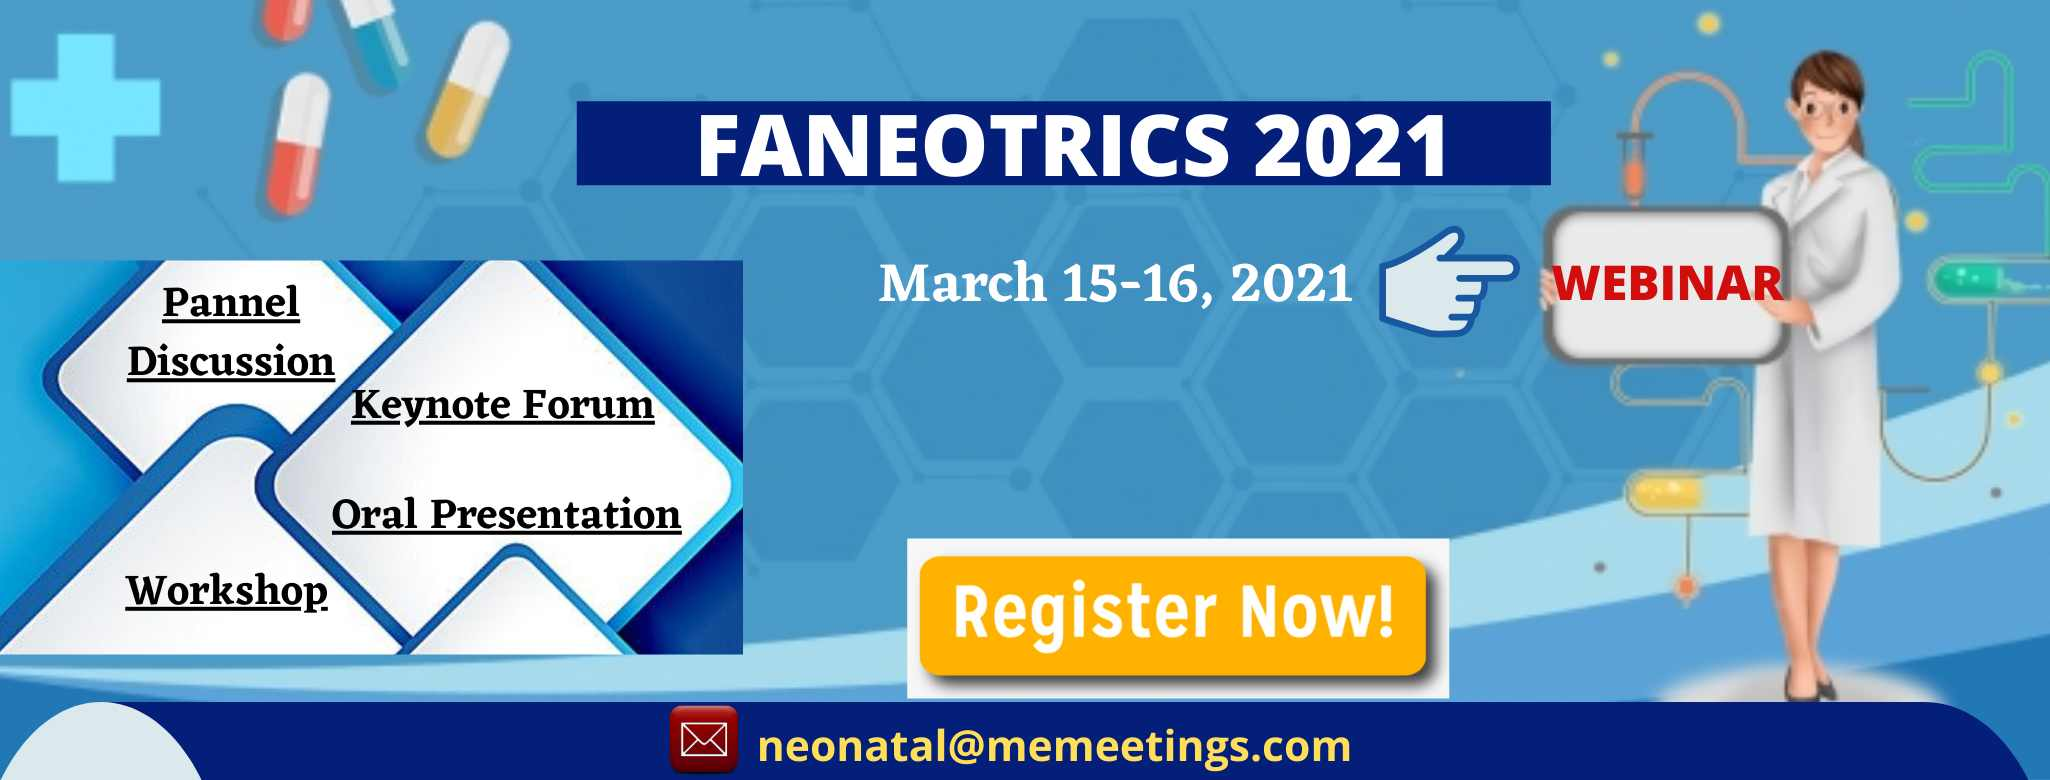 Faneotrics 2021_Home page banner - Faneotrics 2021